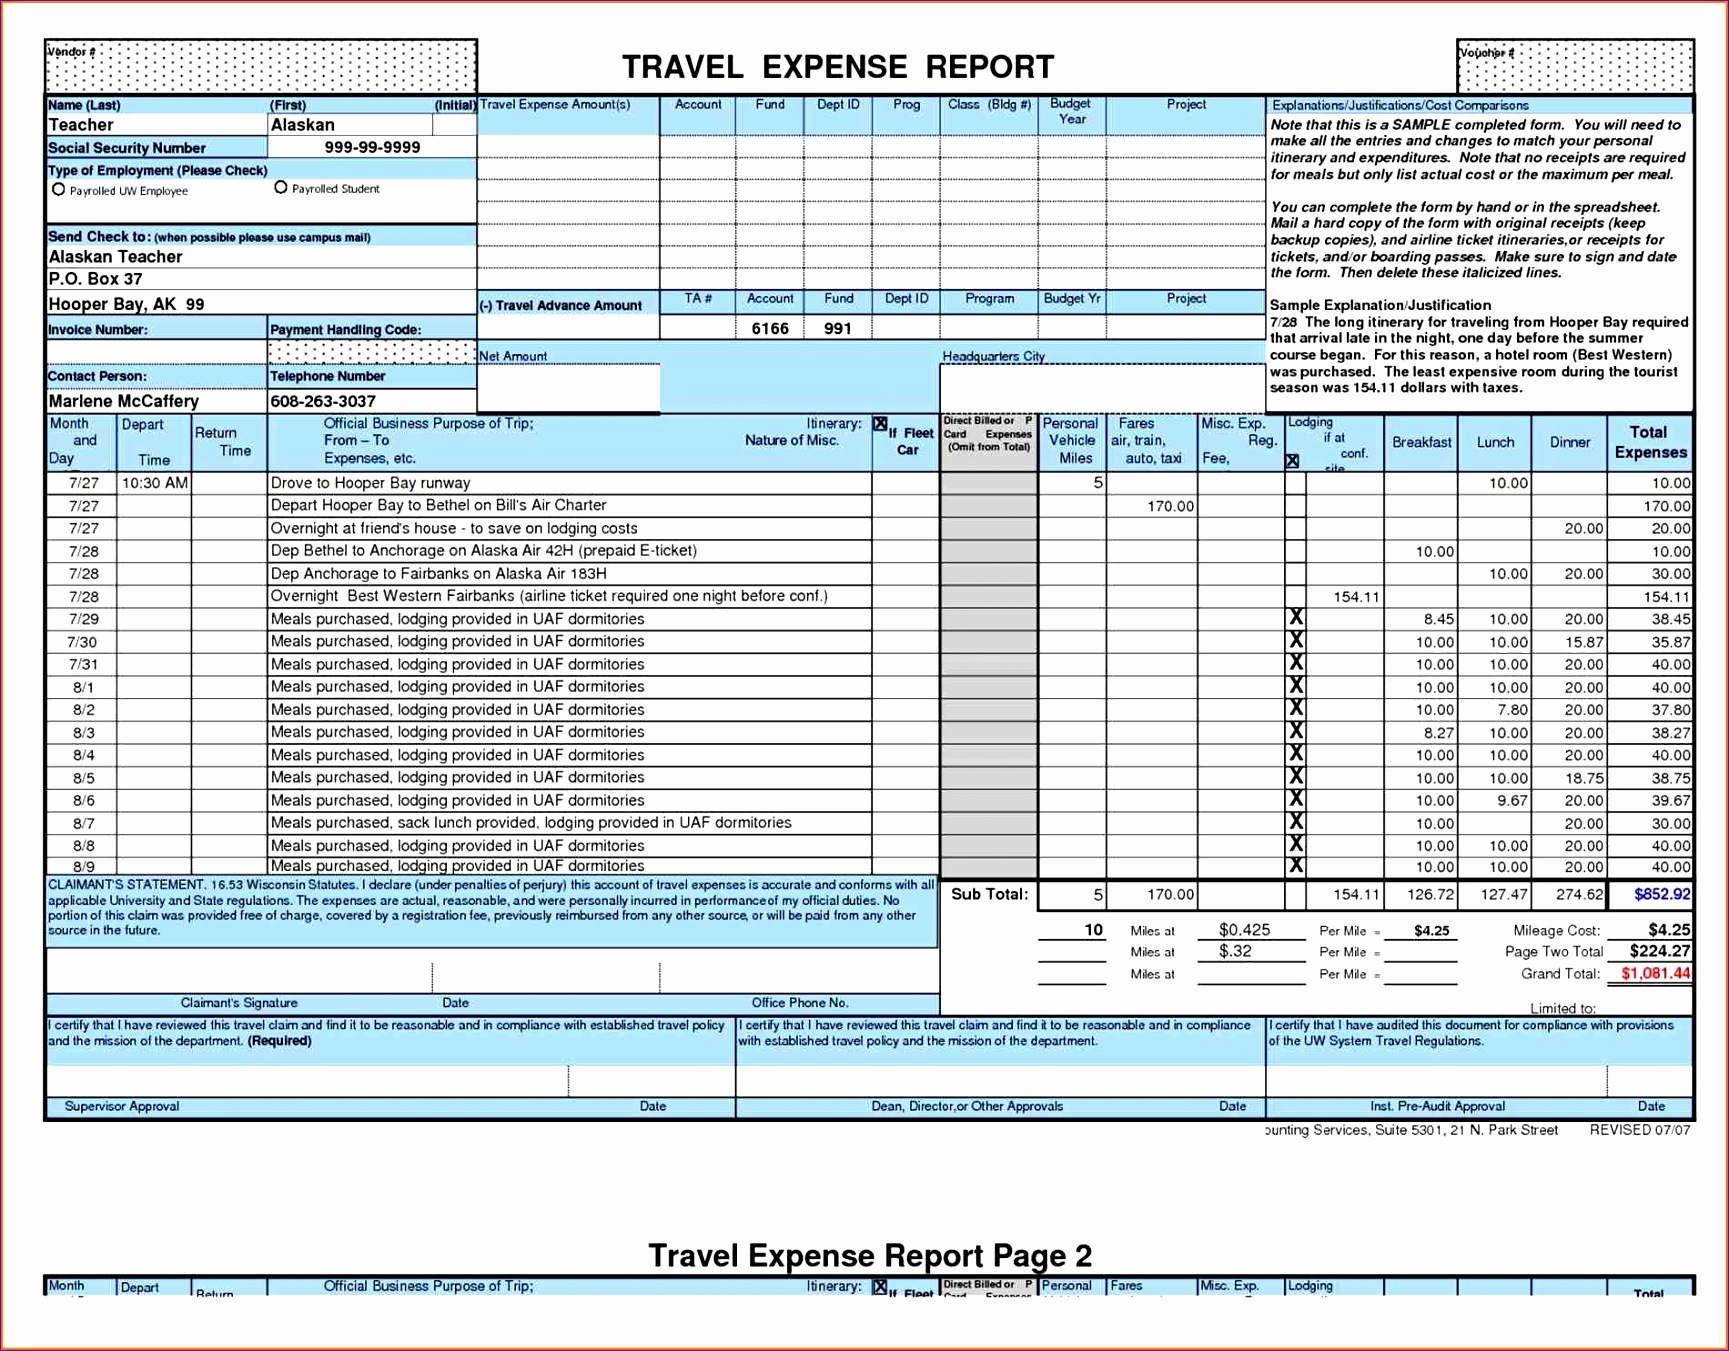 words expense Business Expense Report Template Free report template survey words blank helloalive blank Business Expense Report Template Free expense report helloalive